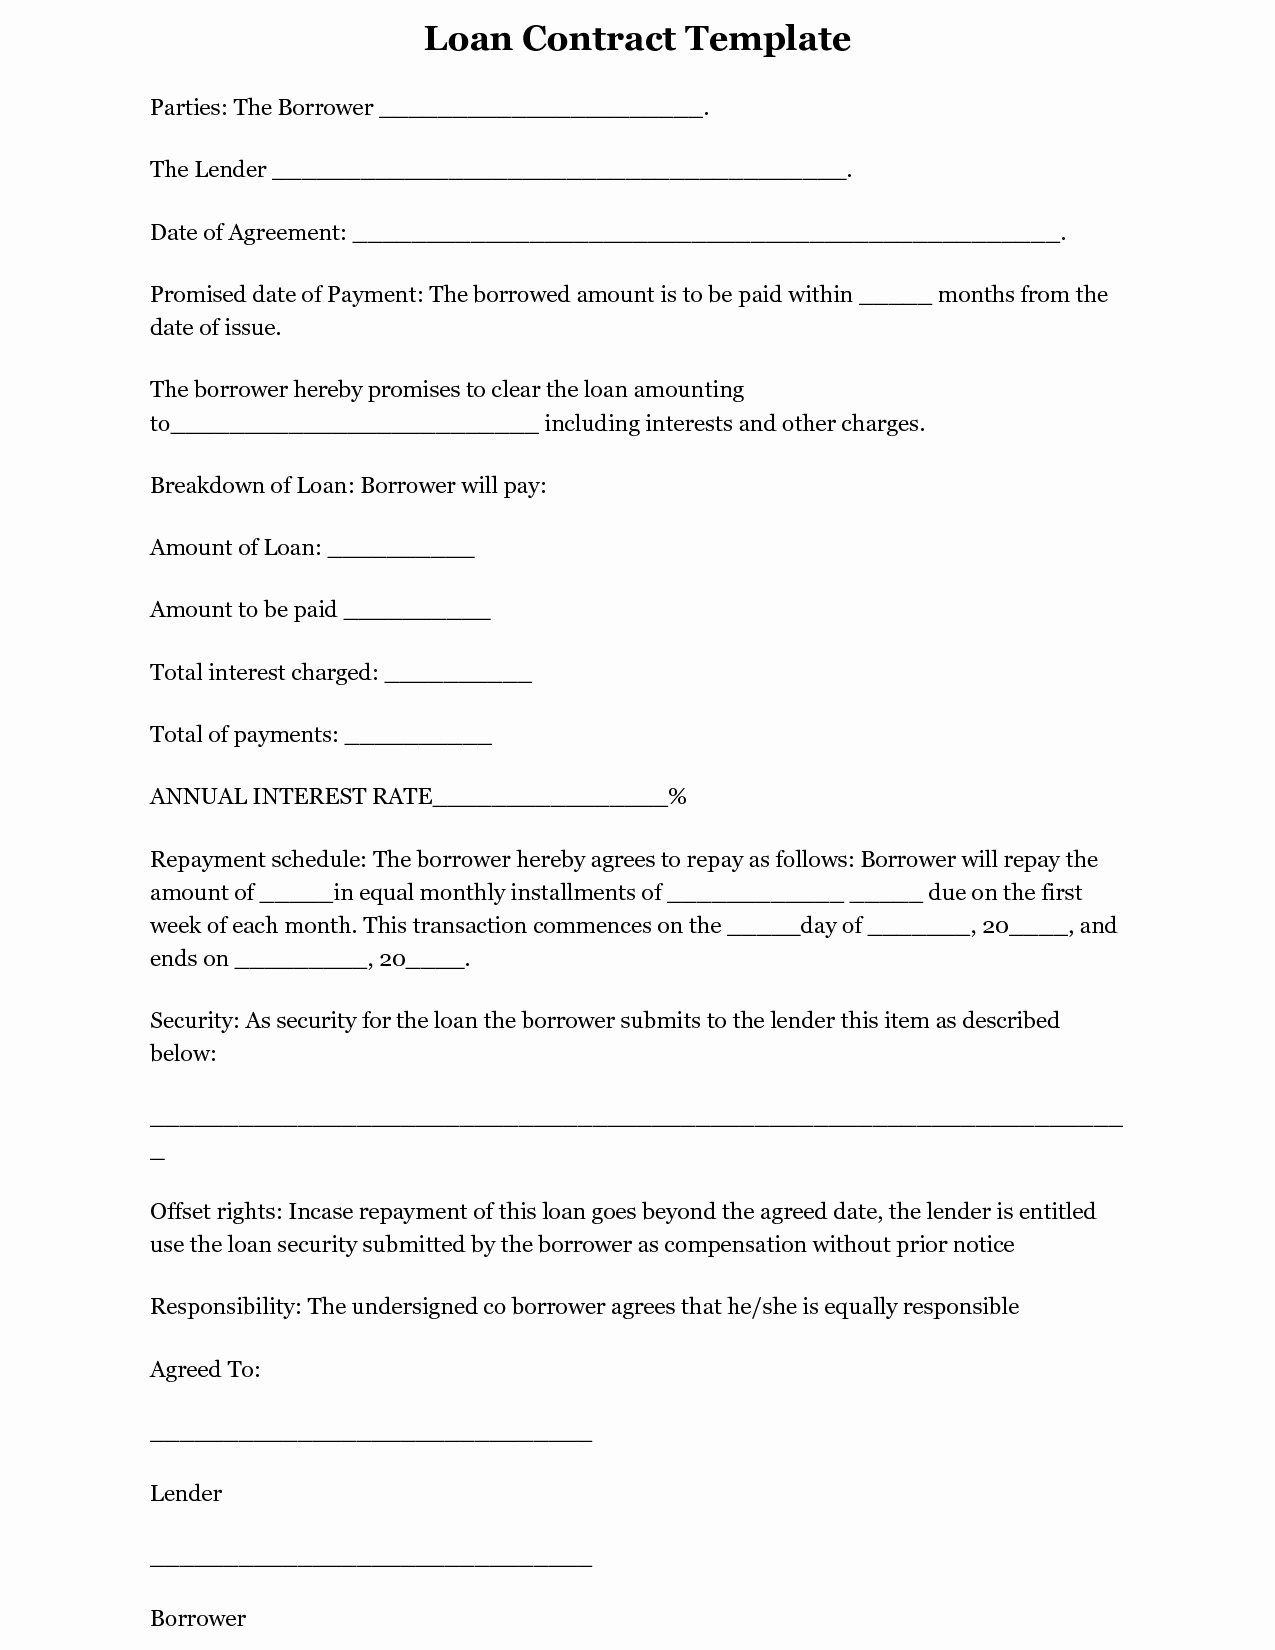 Personal Loan form Template Inspirational Free Printable Loan Template form Generic